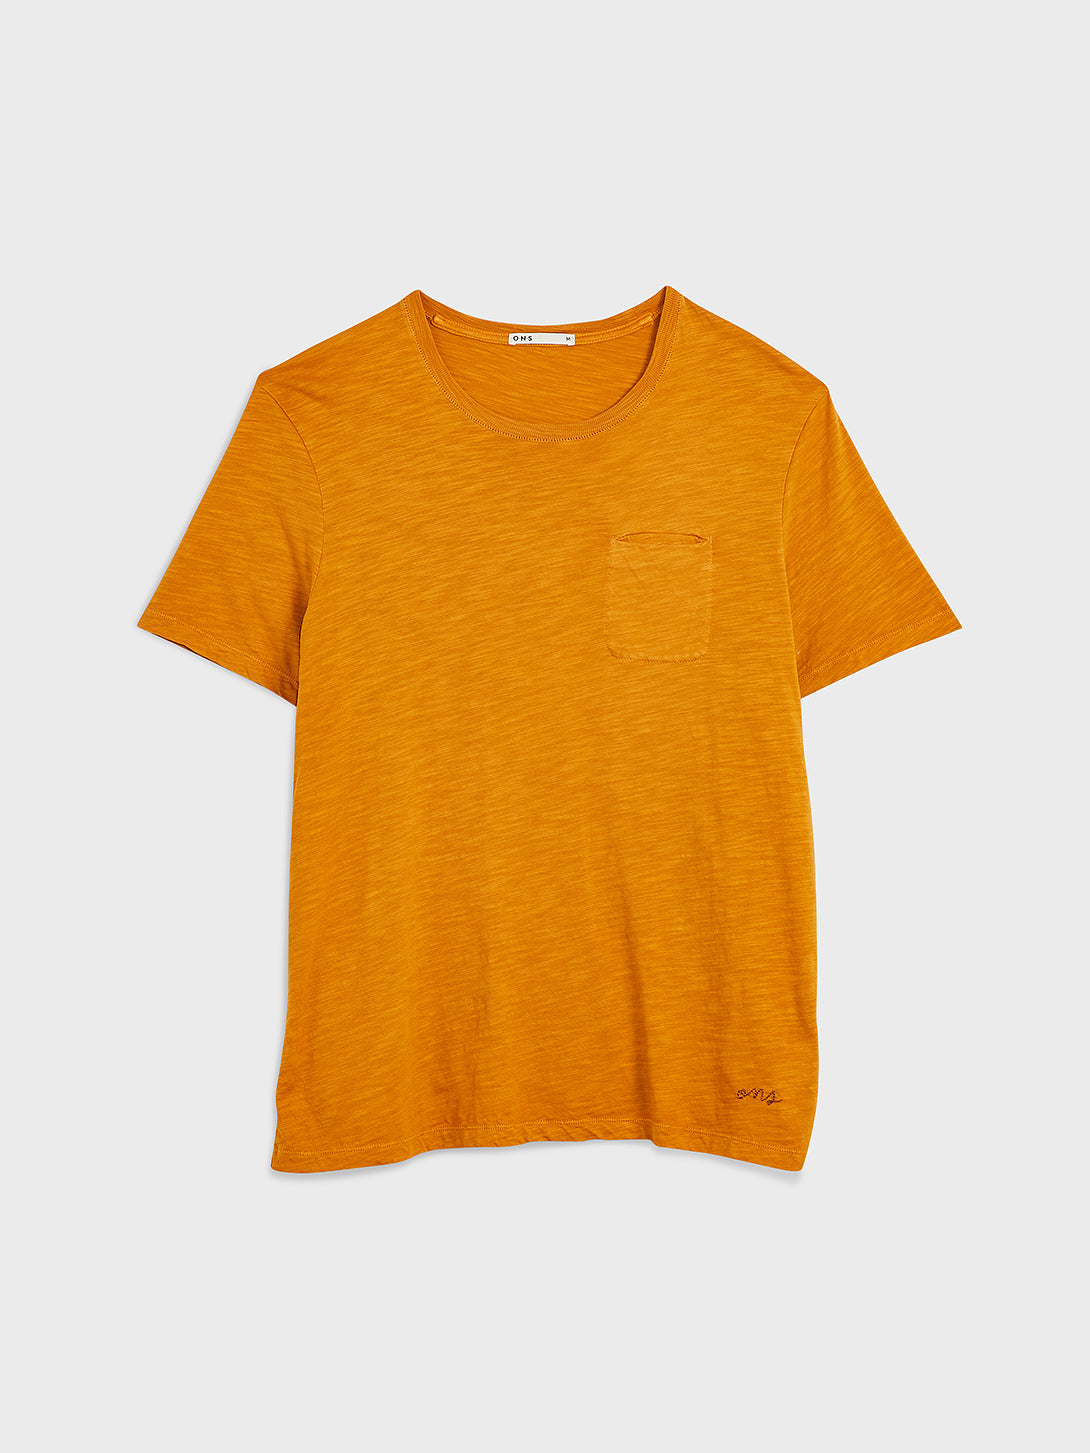 black friday deals ONS Clothing Men's tee in CATHAY SPICE